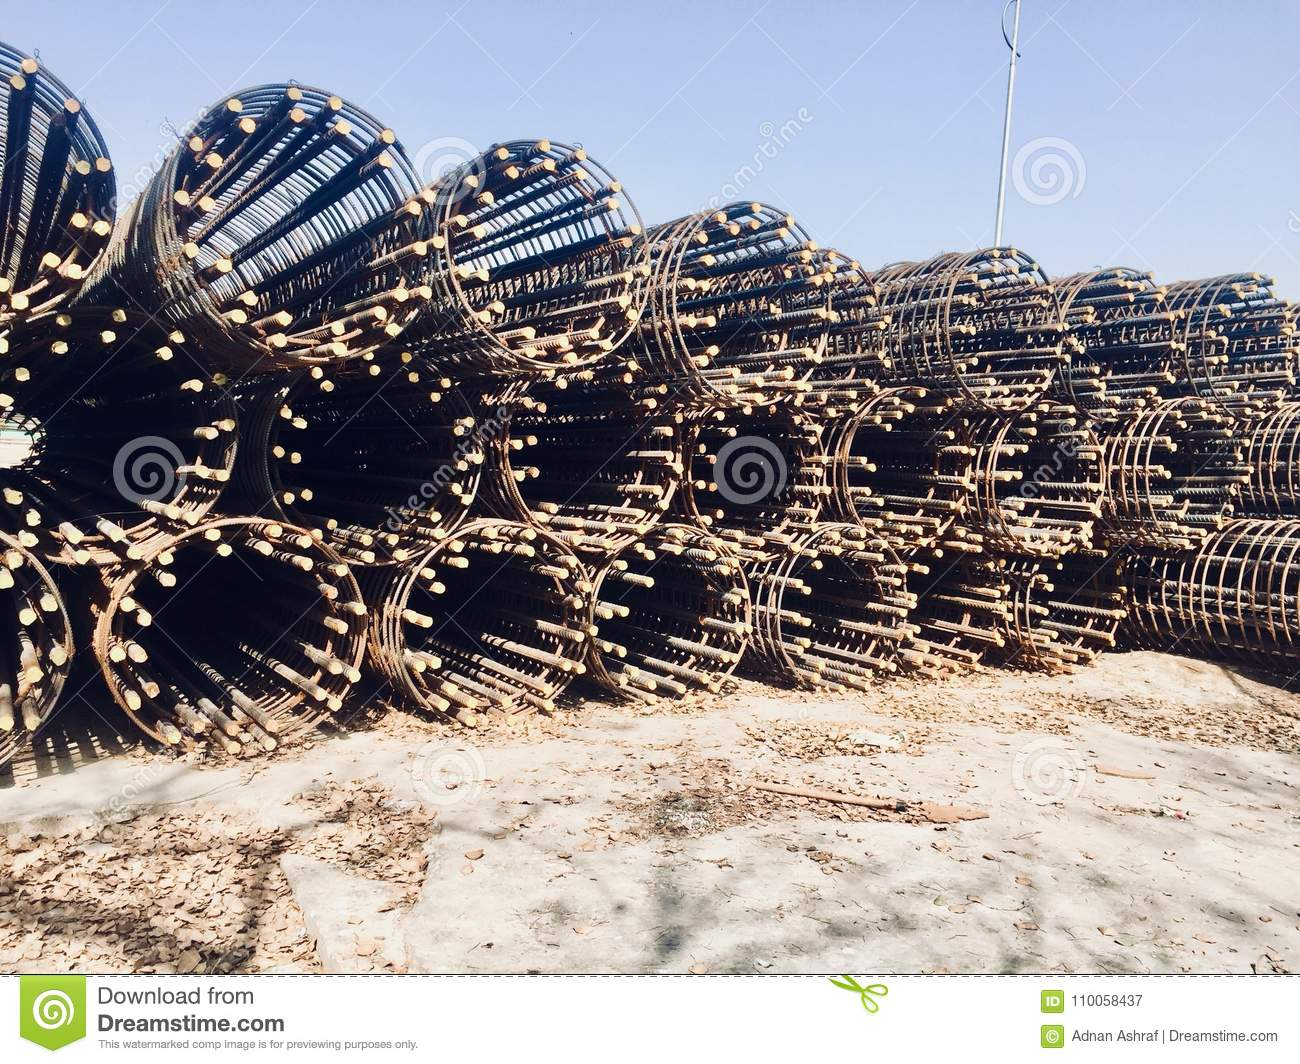 Heavy Steels Material For Heavy Construction Of Brigades